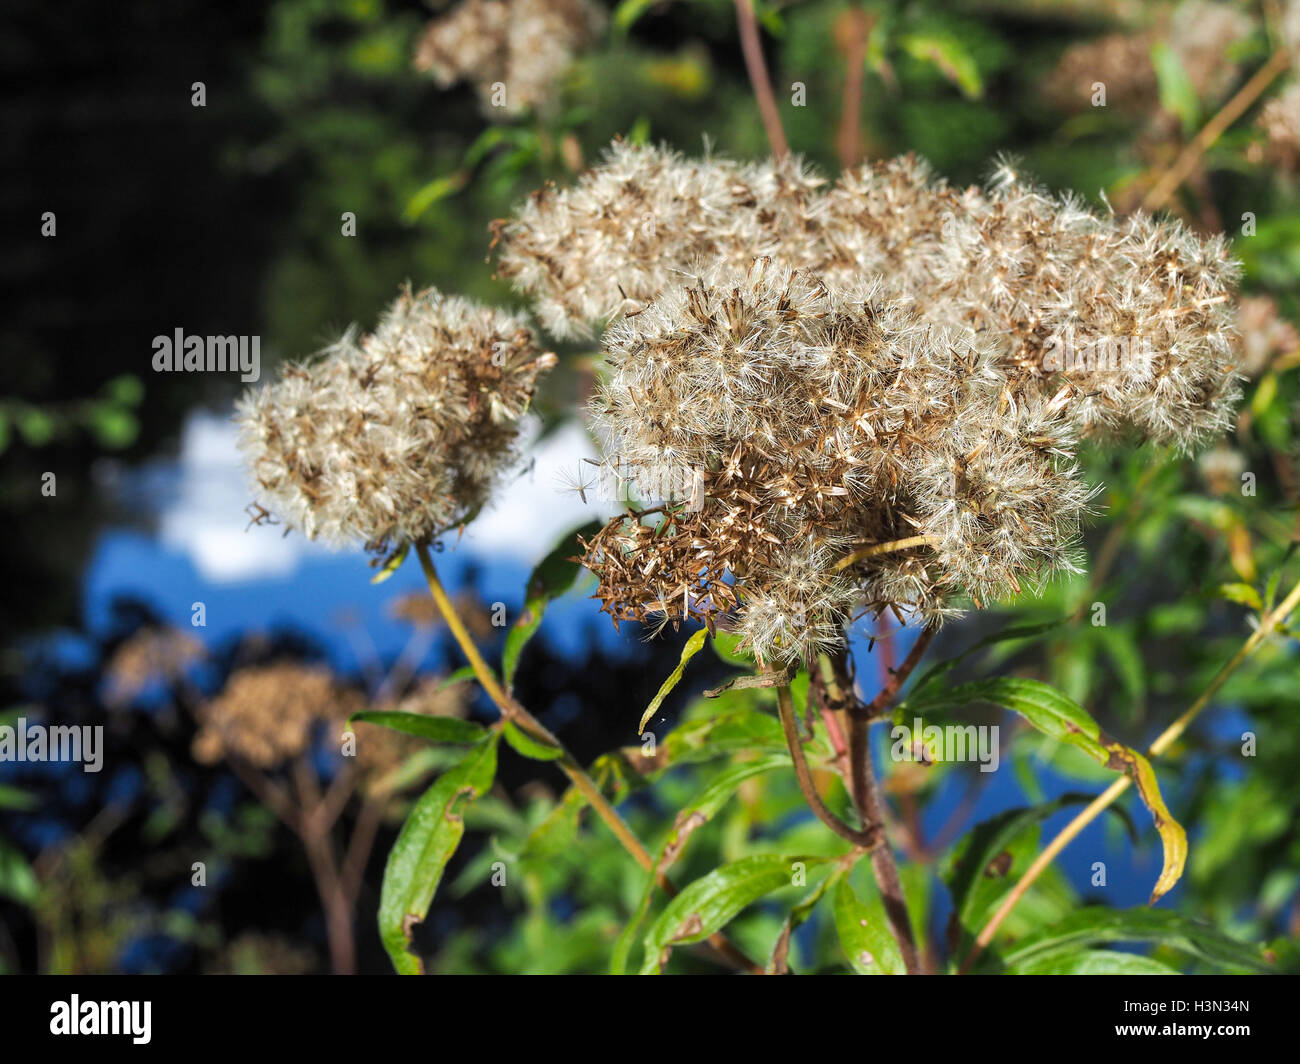 Old Man's Beard or Traveller's Joy (Clematis vitalba) - Stock Image